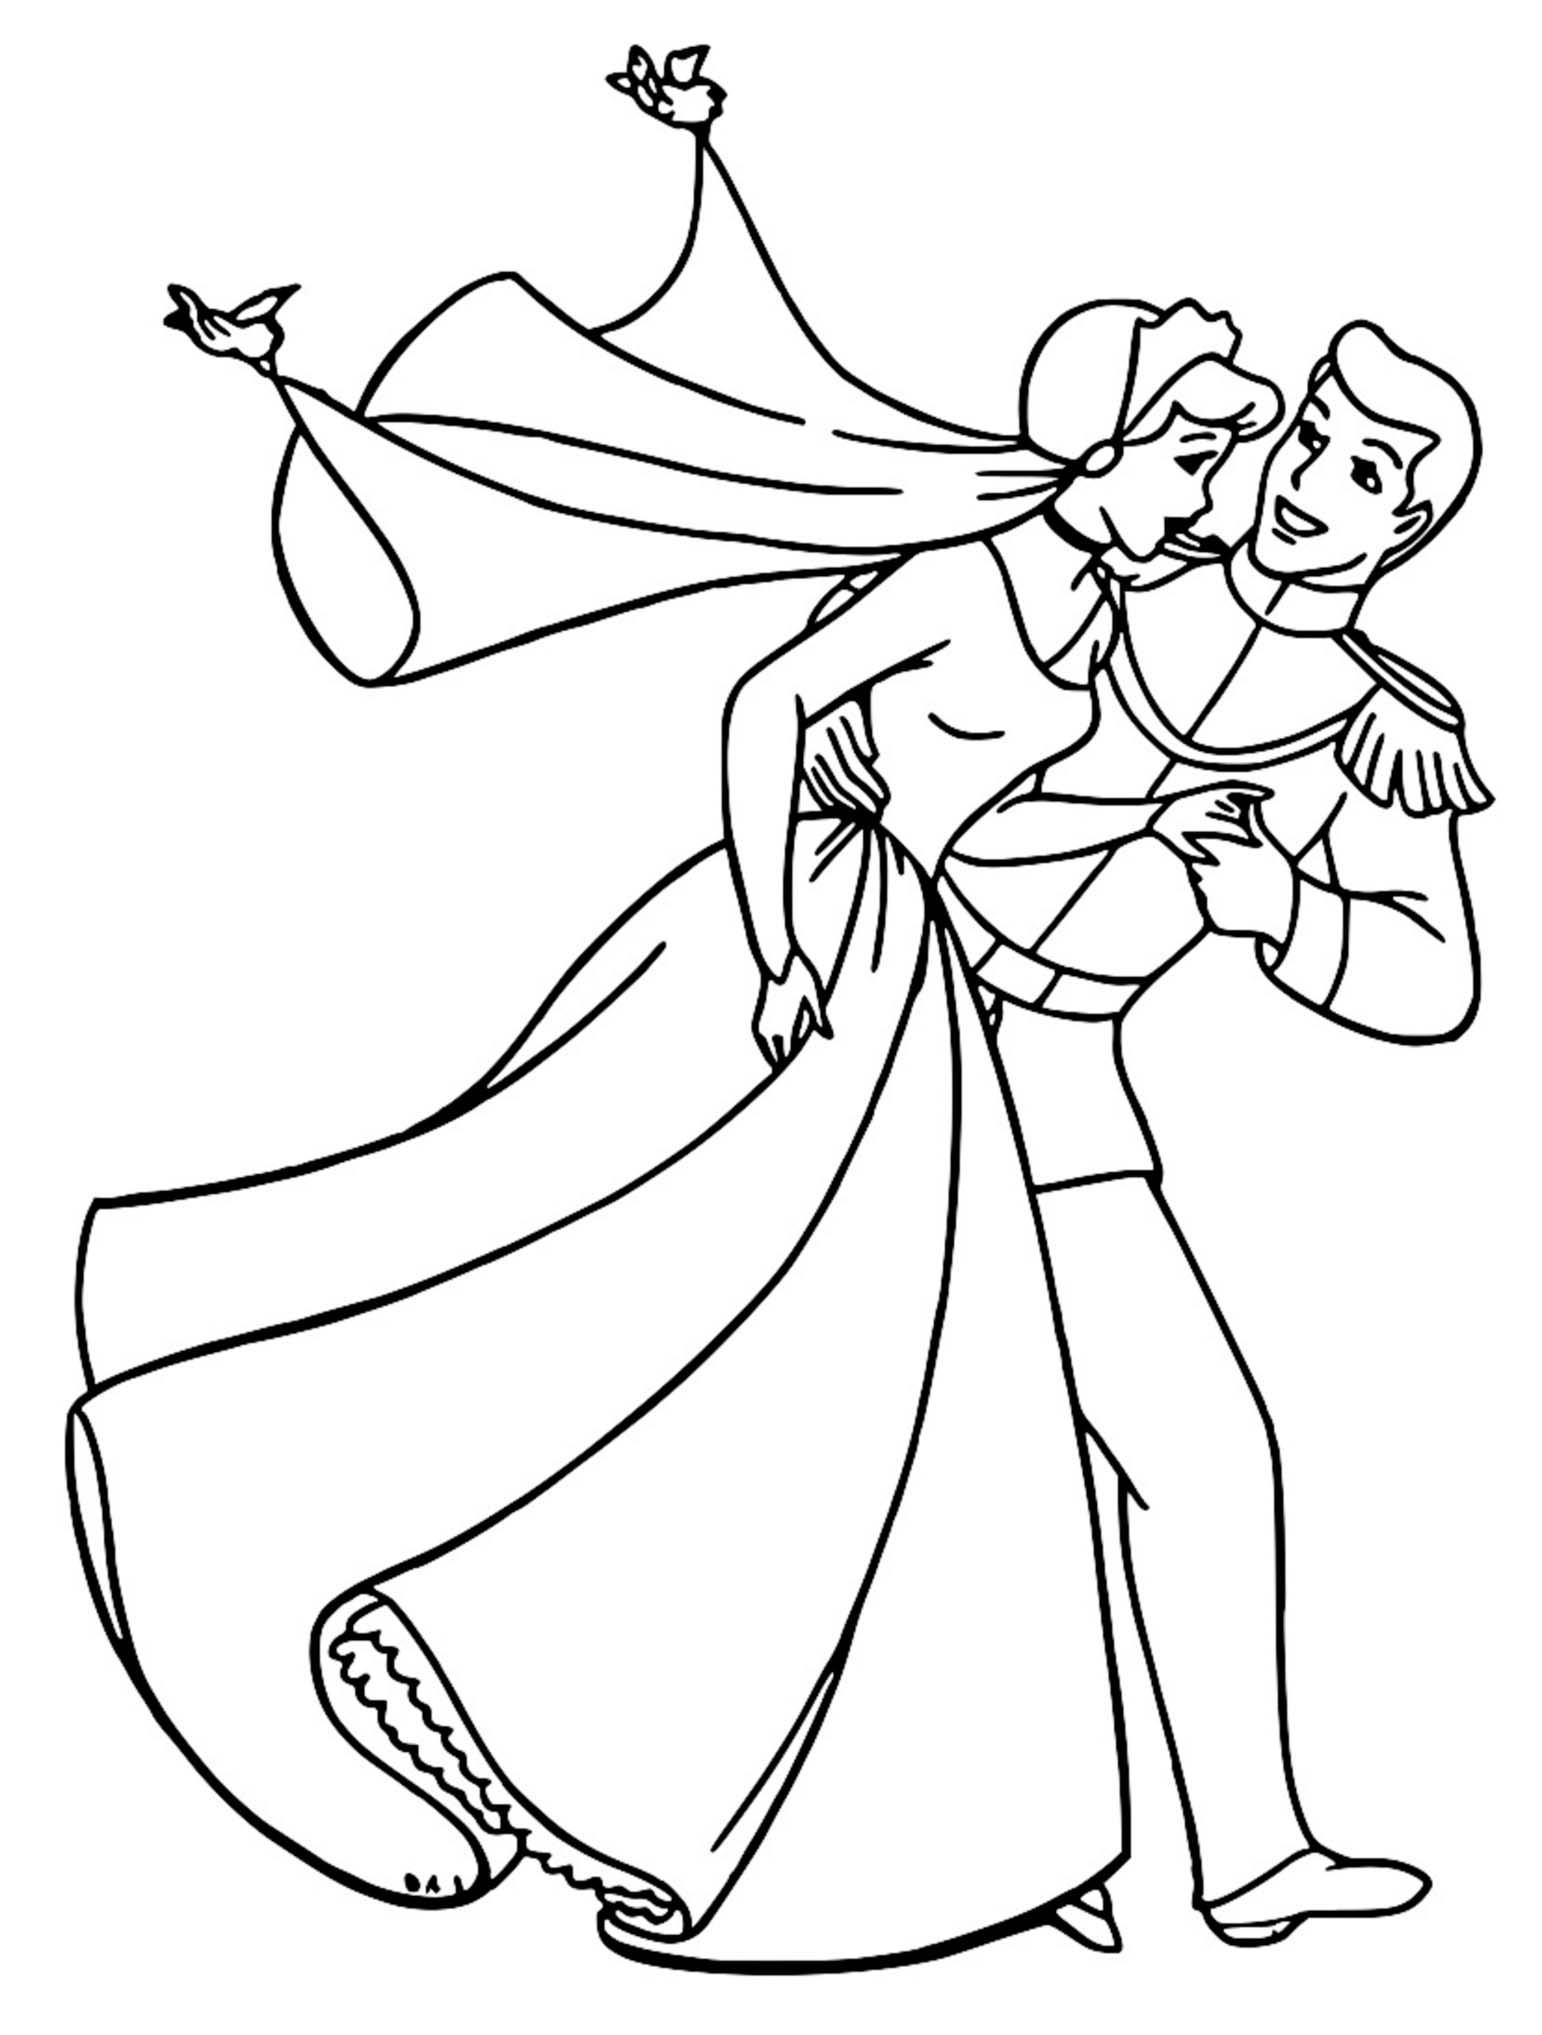 Cinderella And Prince Charming Coloring Pages 11